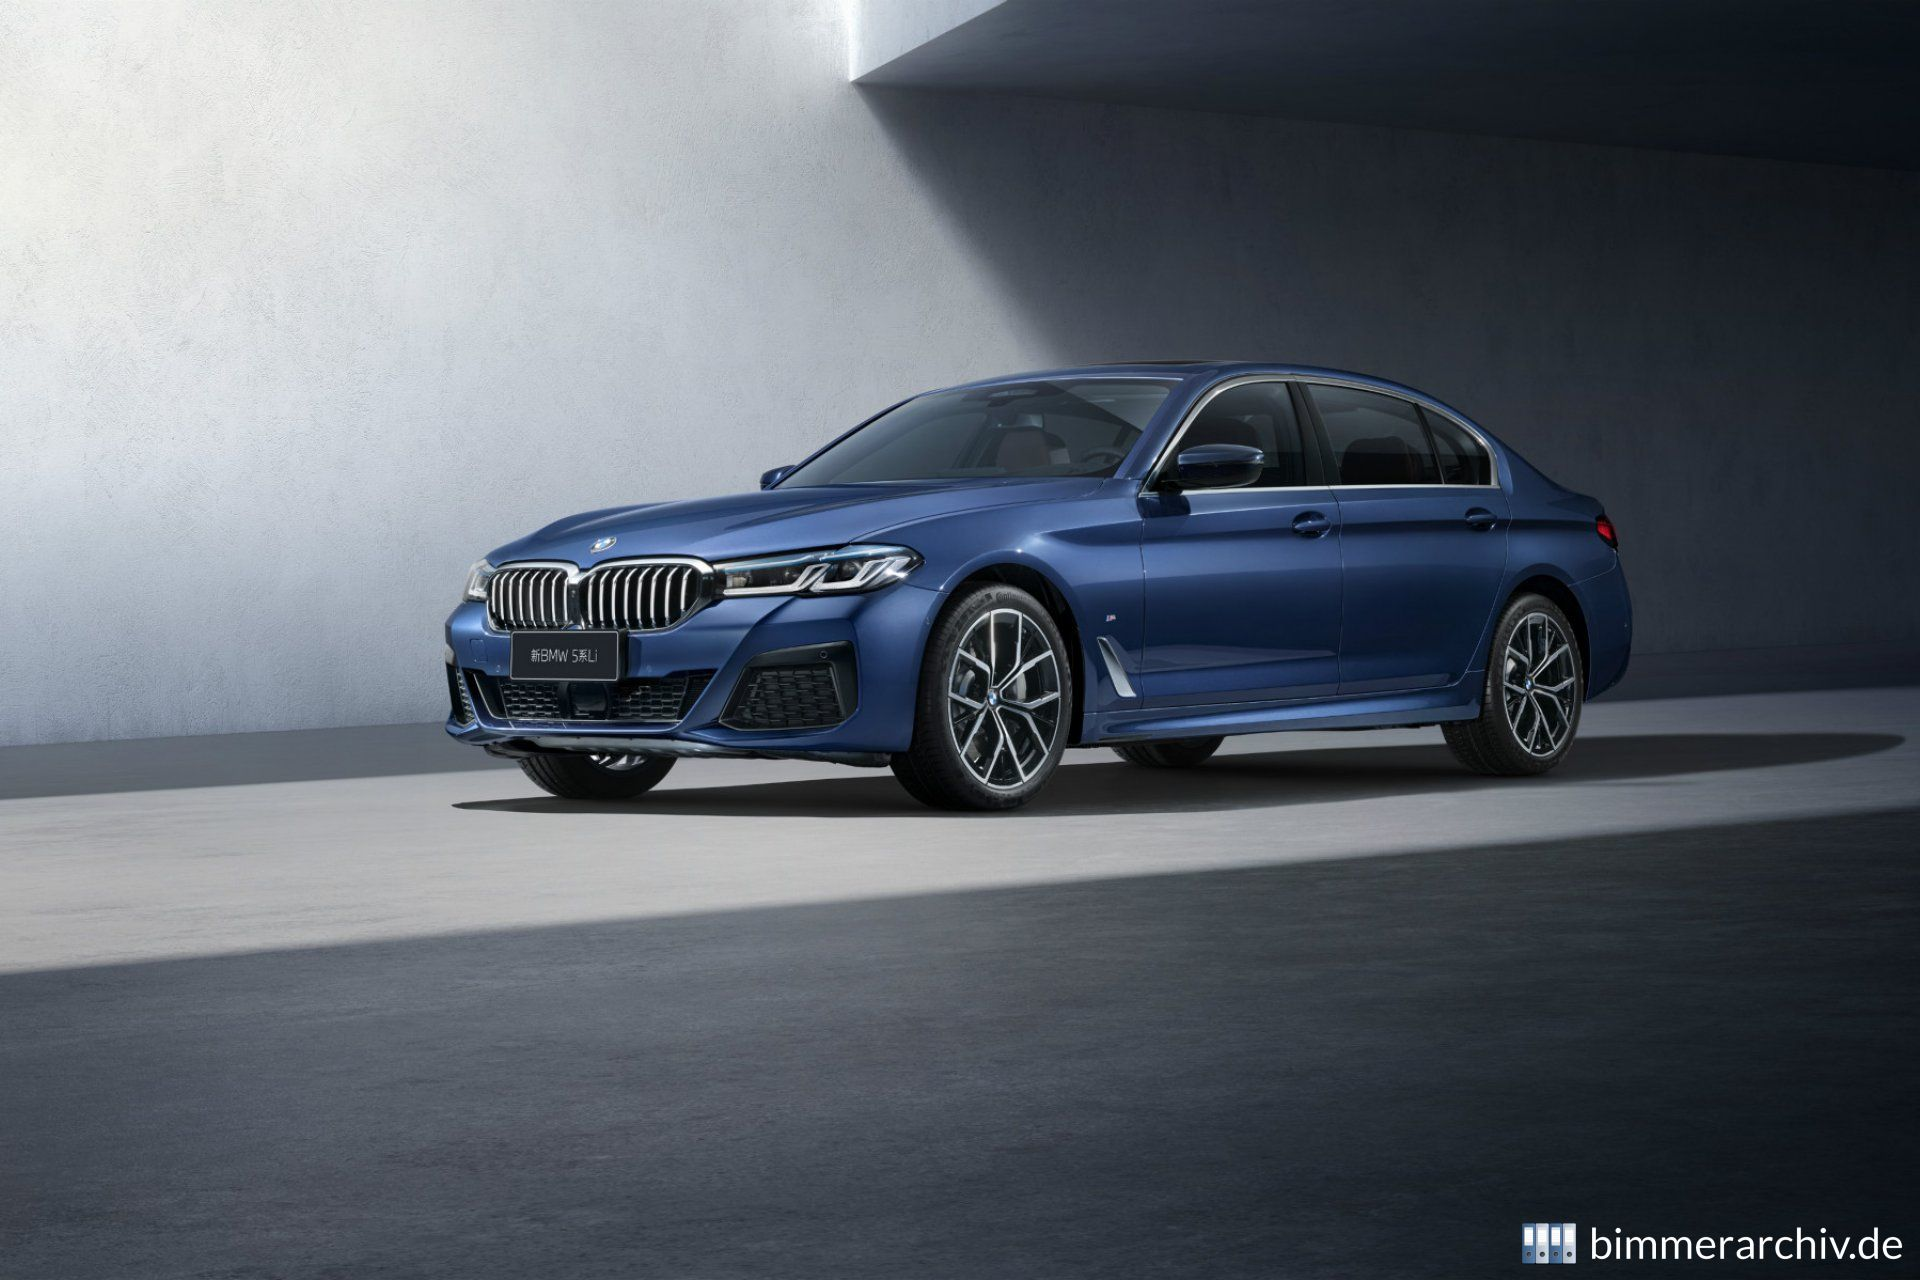 BMW 5 Series Sedan, Long Wheel Base